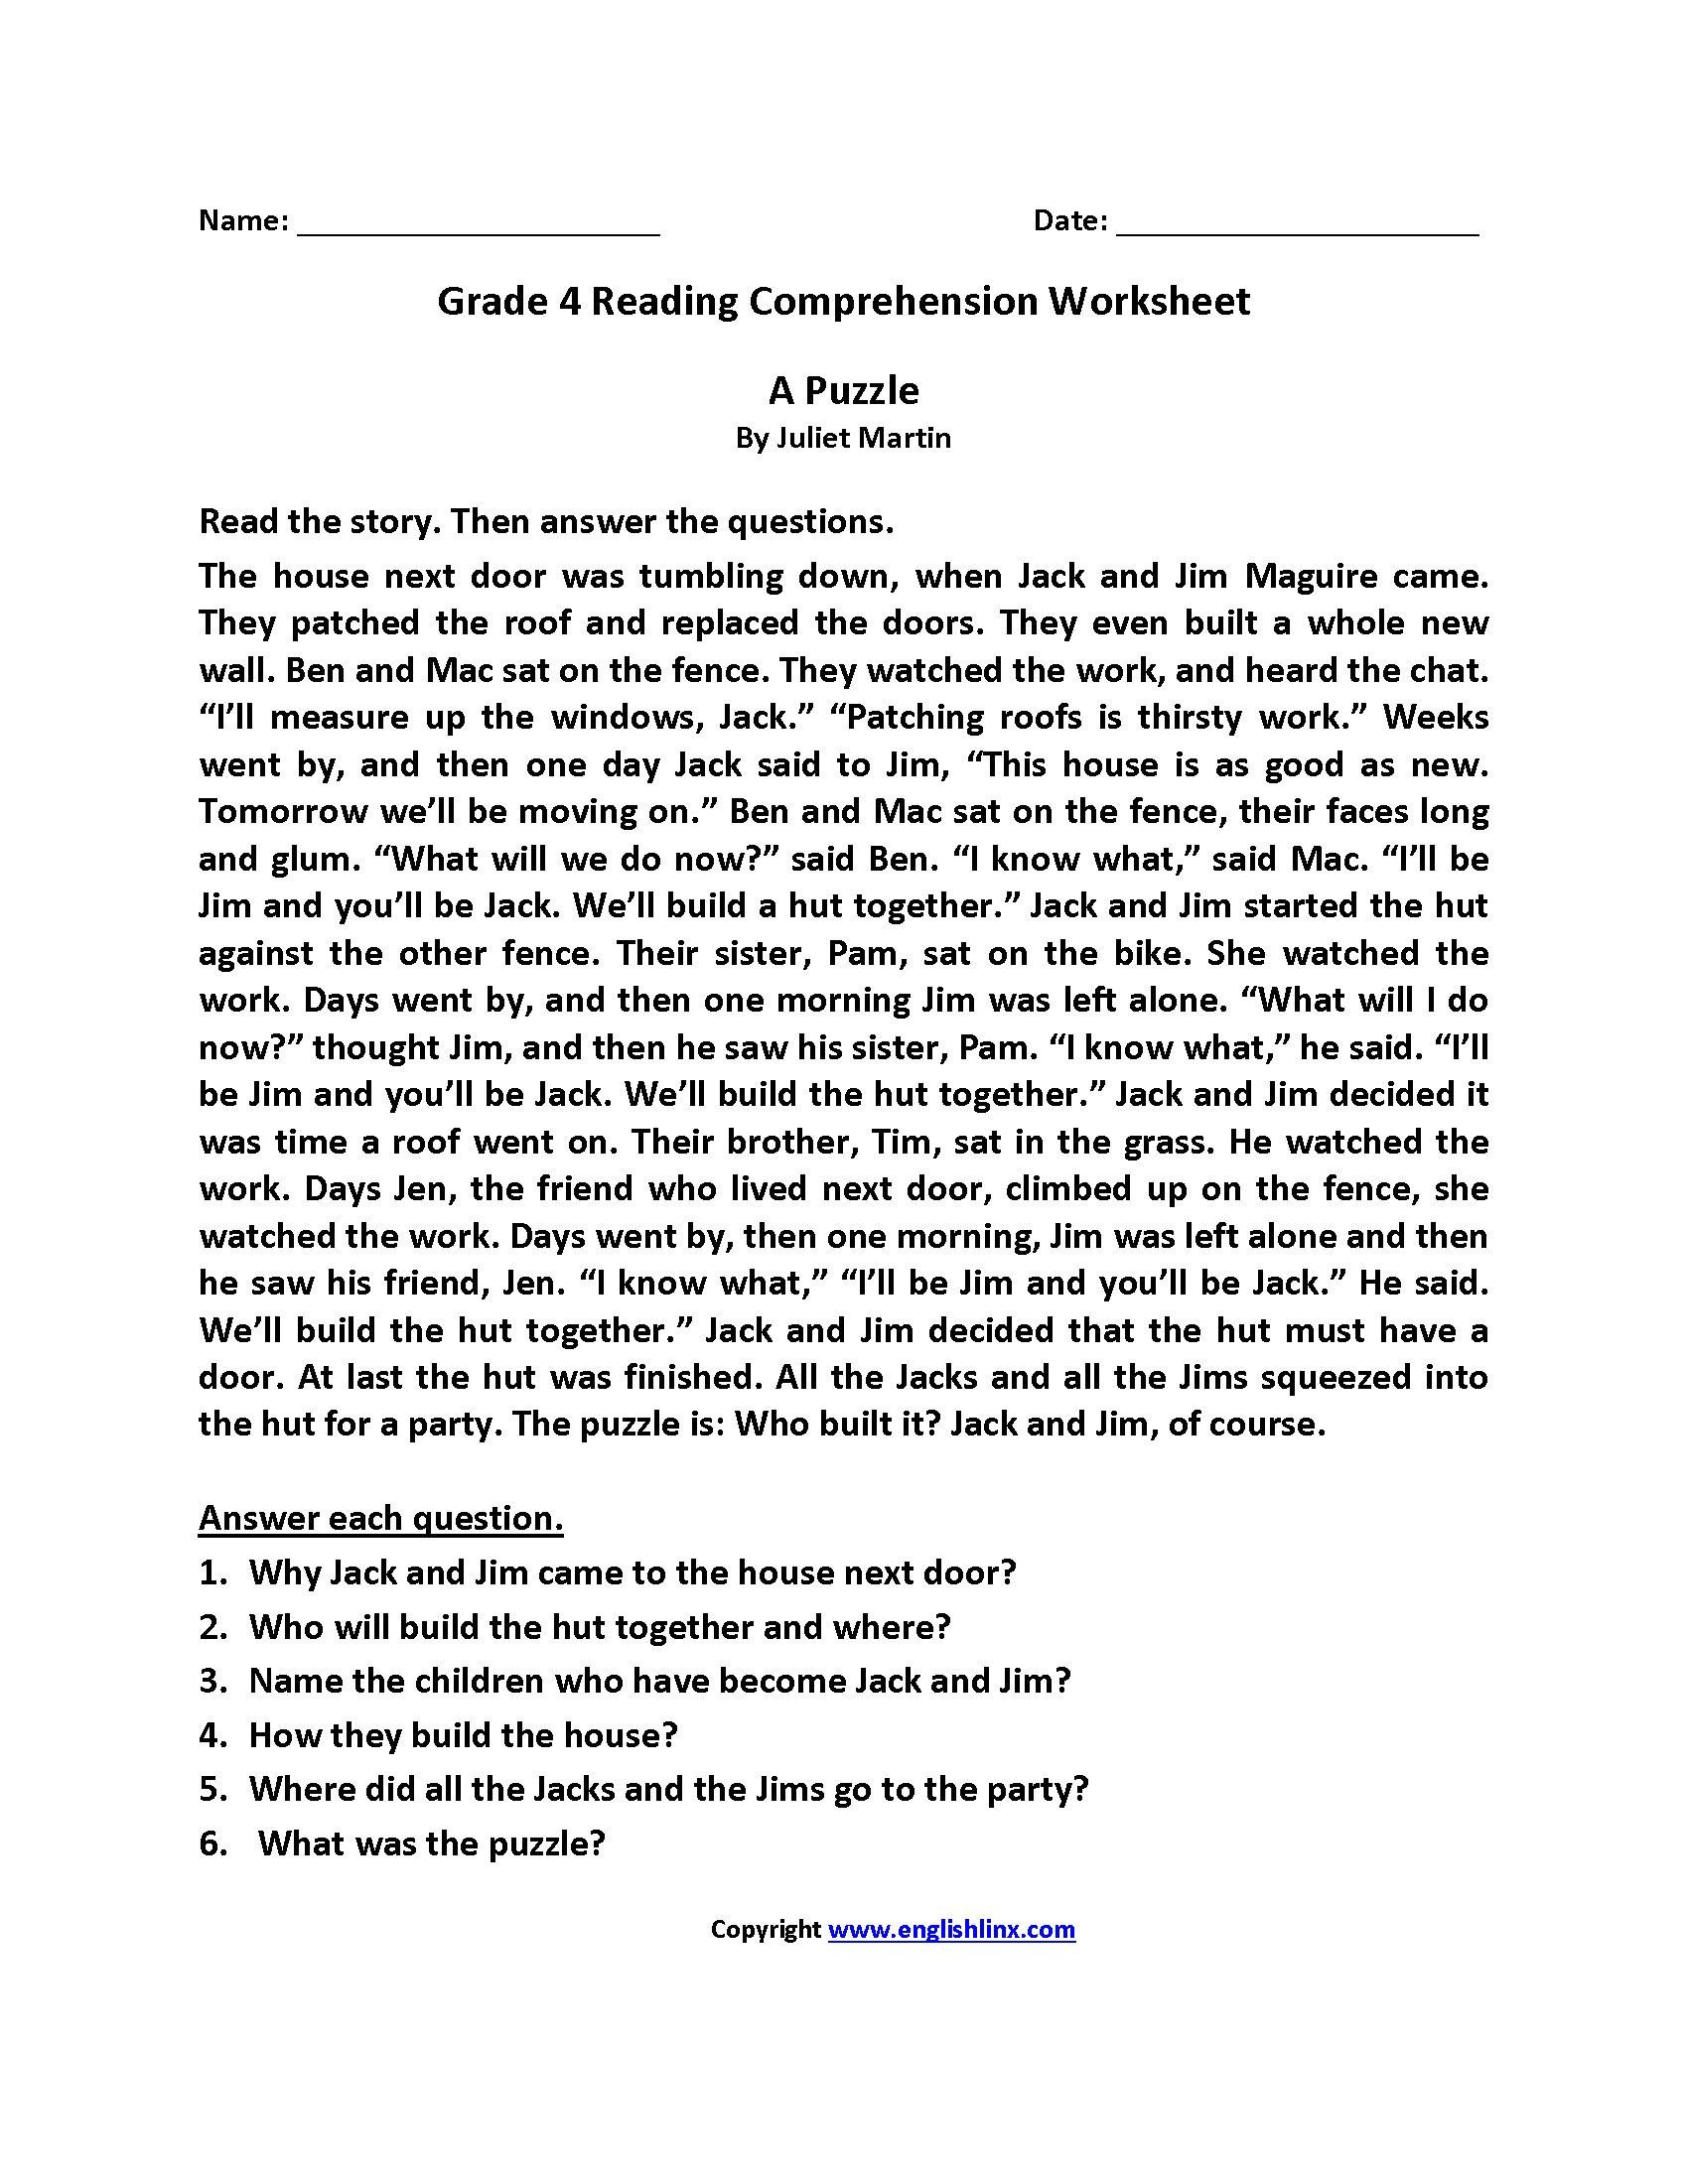 3rd grade readingmprehension worksheets multiple choice and free printable 4th new prehension of